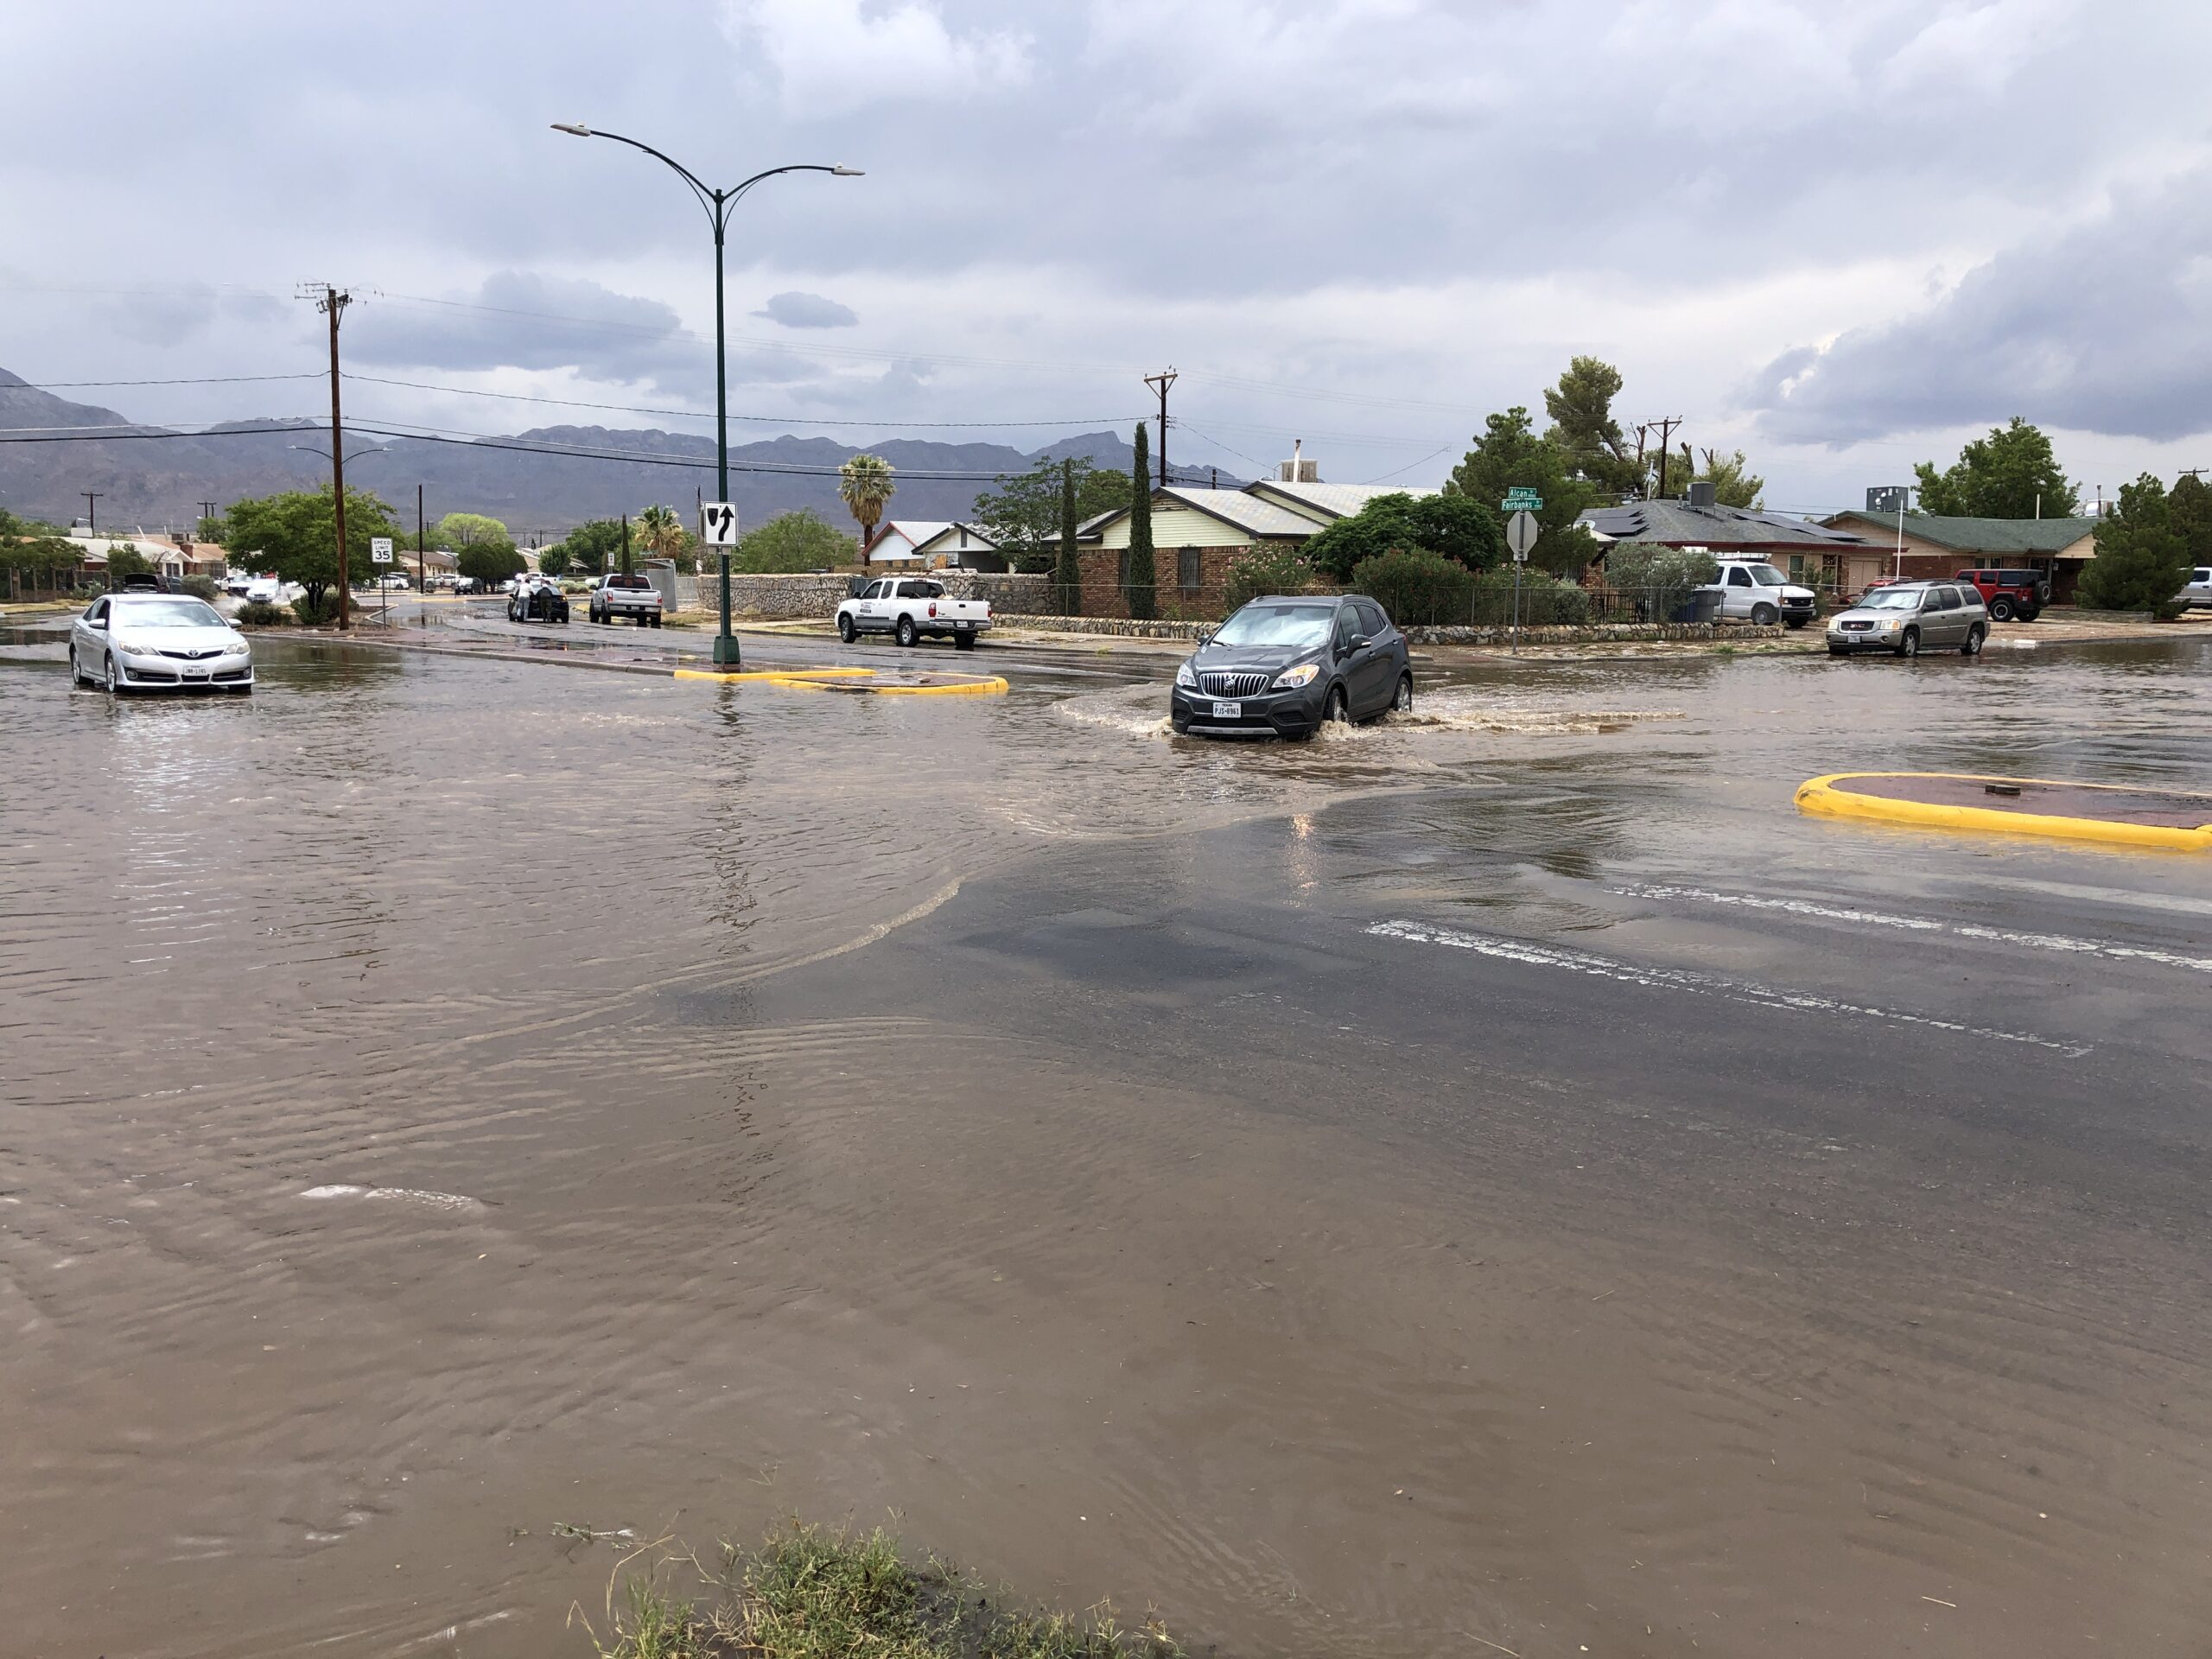 Cars get overwhlemed by street flooding at an El Paso intersection following heavy rain.